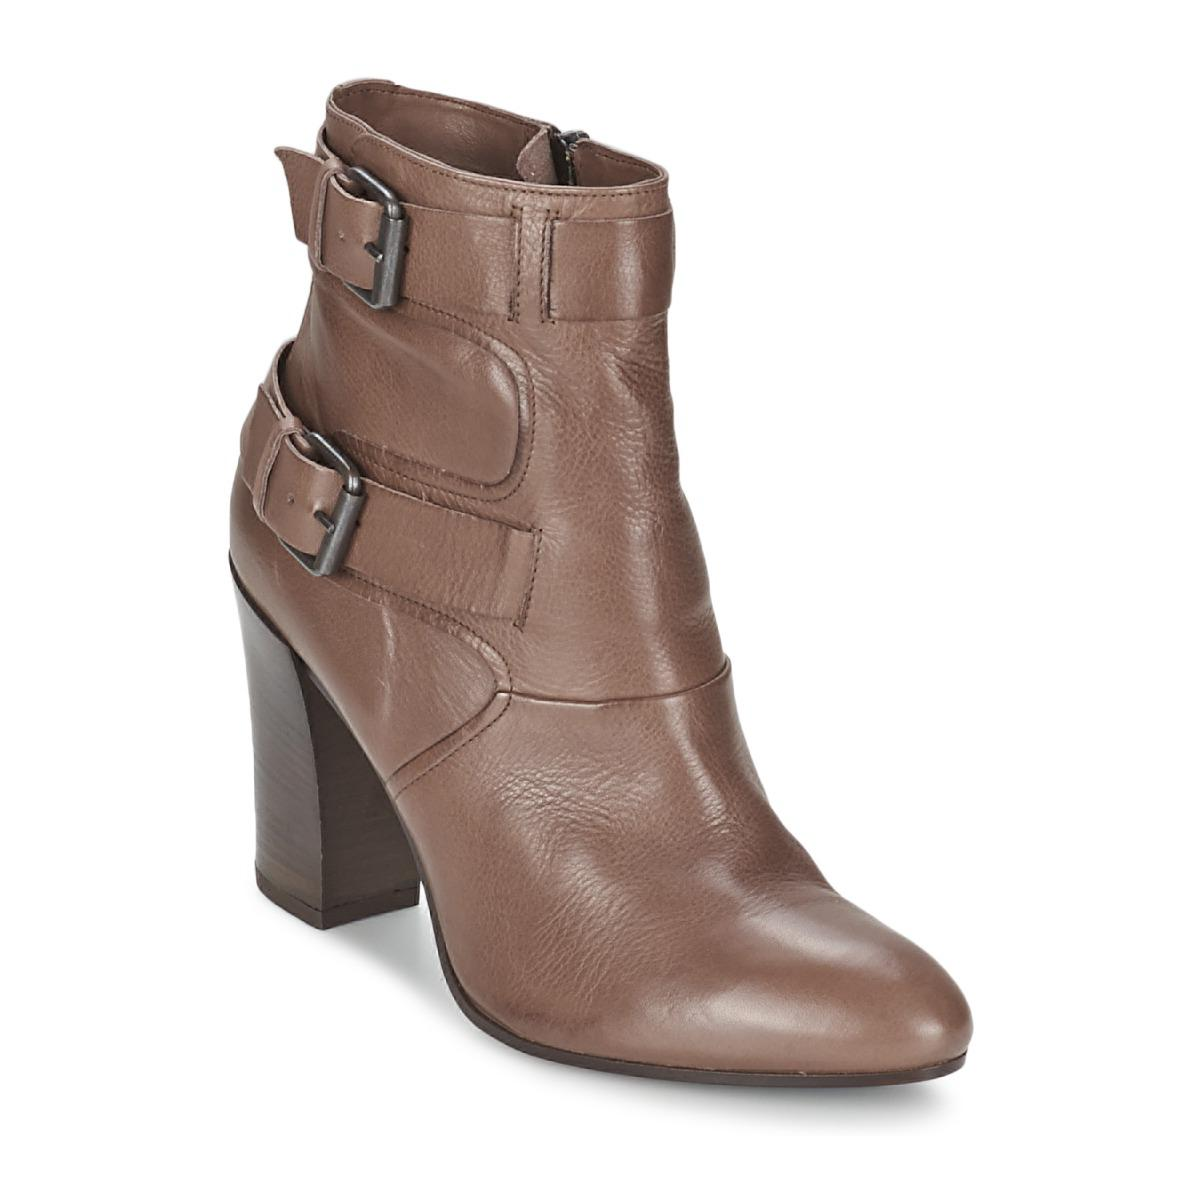 Janet&Janet ELIOLE women's Low Ankle Boots in Discounts Cheap Price For Sale 2018 1bQkwlU8Wg